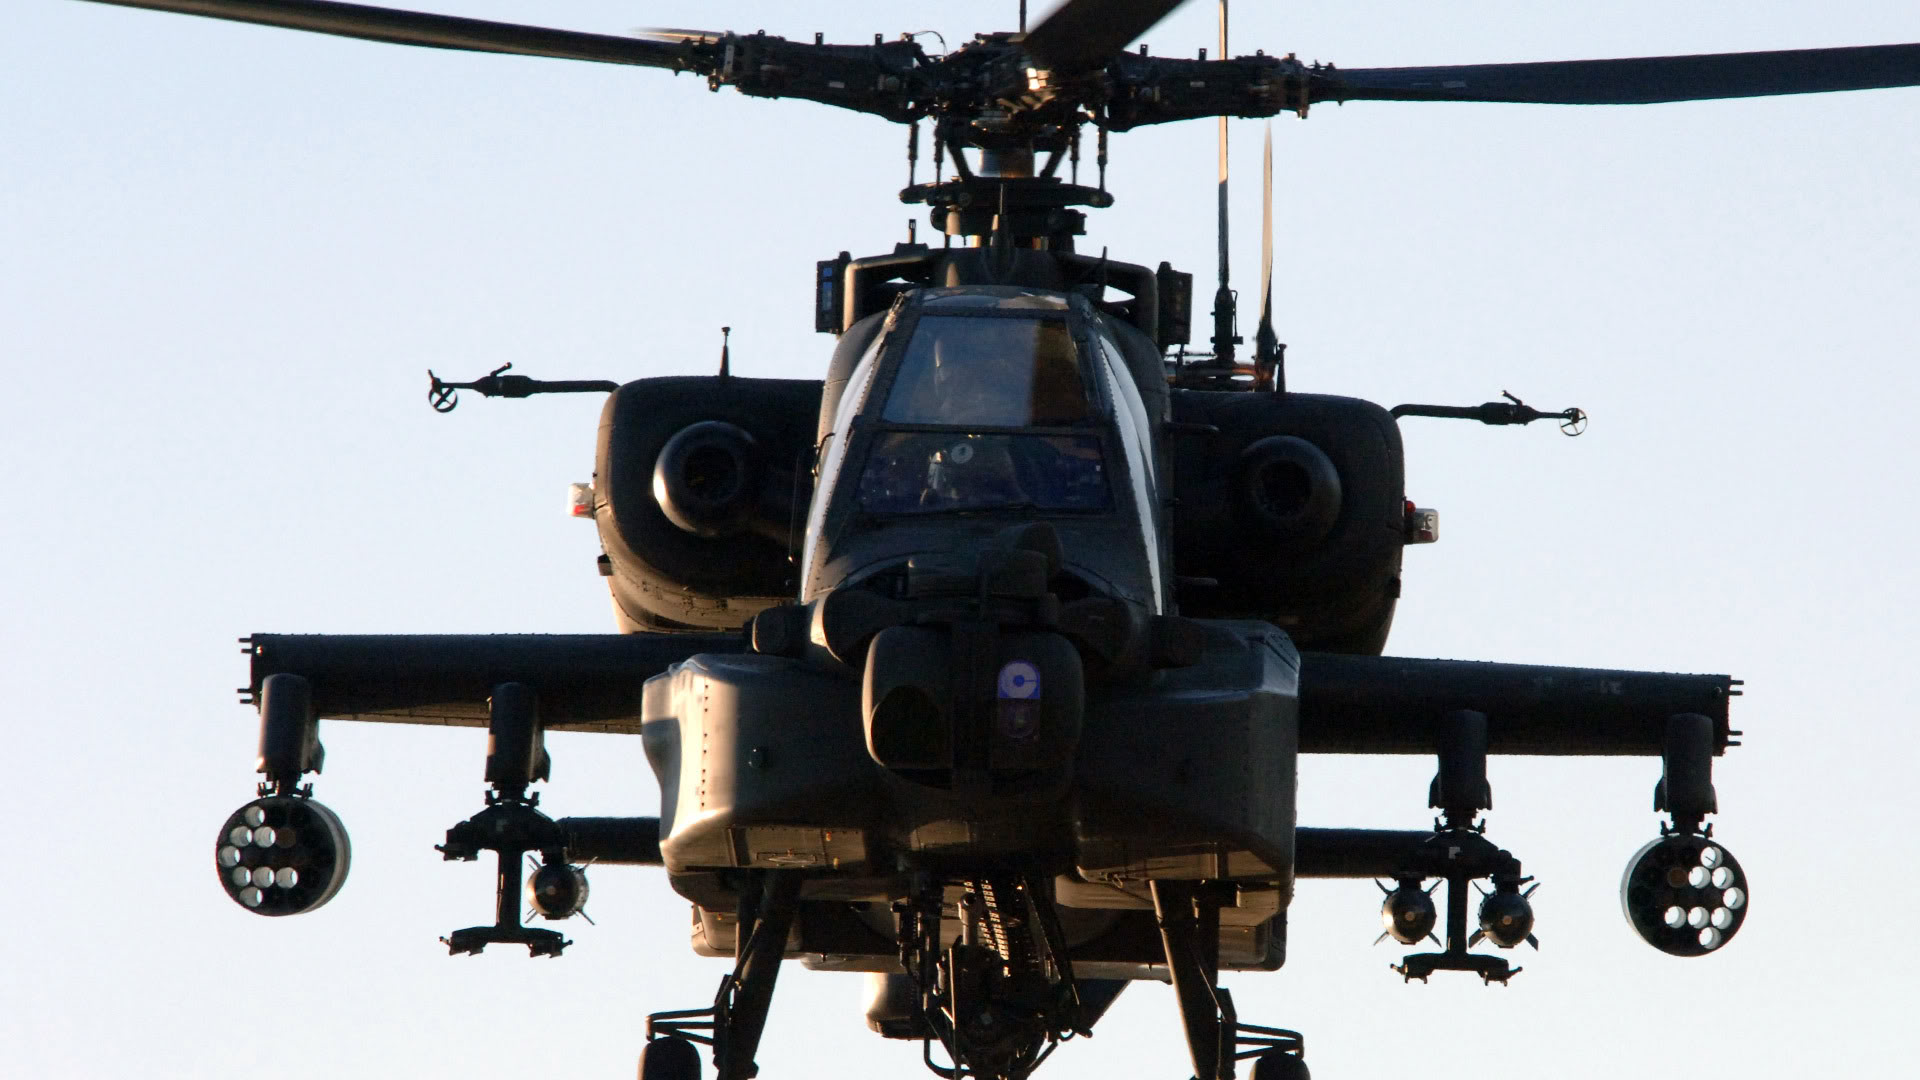 Us Military Helicopters 9524 Hd Wallpapers in War n Army   Imagesci 1920x1080